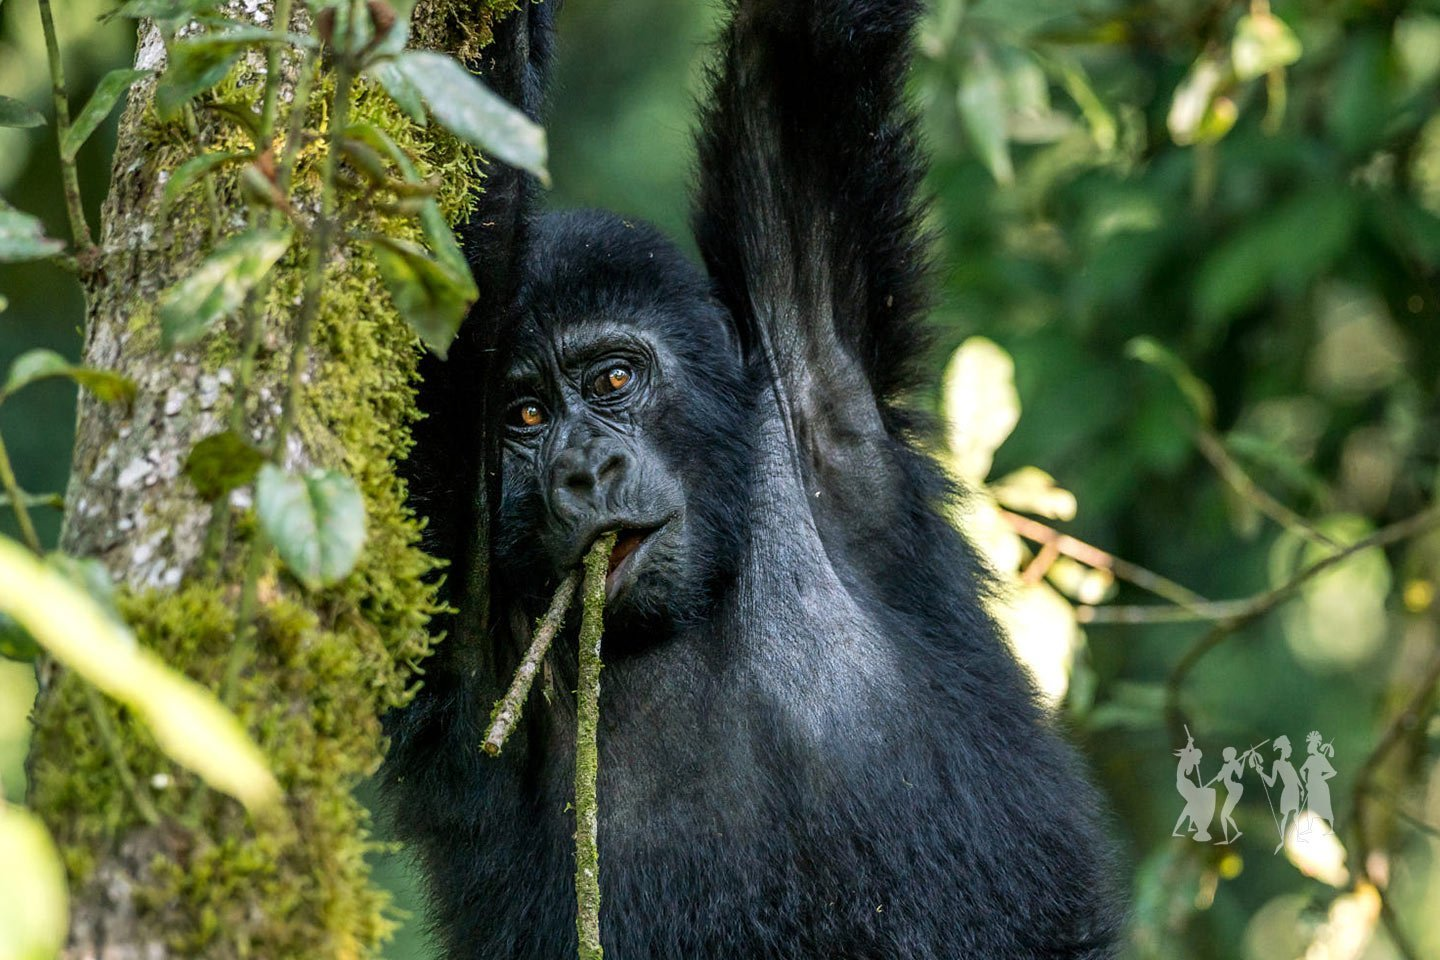 Day 4: Gorilla Tracking in Bwindi Impenetrable Forest